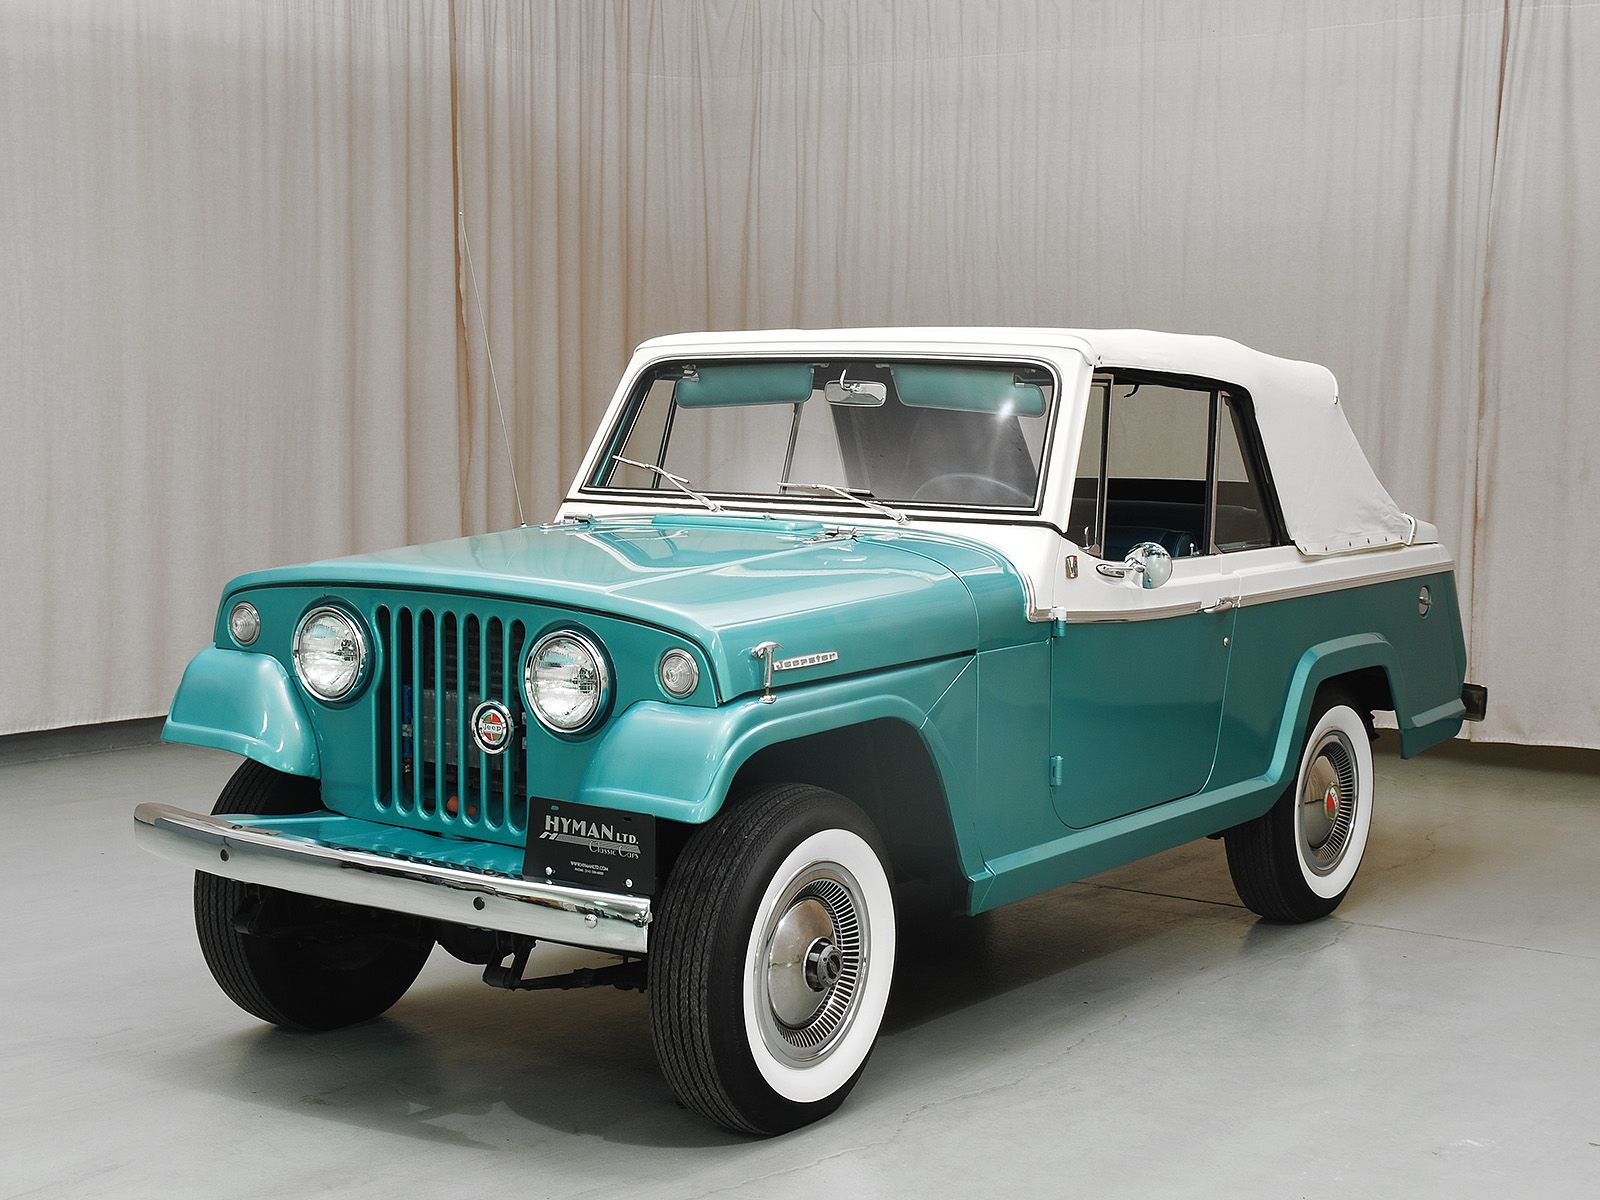 1969 jeepster convertible jeepster commando pinterest convertible jeeps and jeep stuff. Black Bedroom Furniture Sets. Home Design Ideas